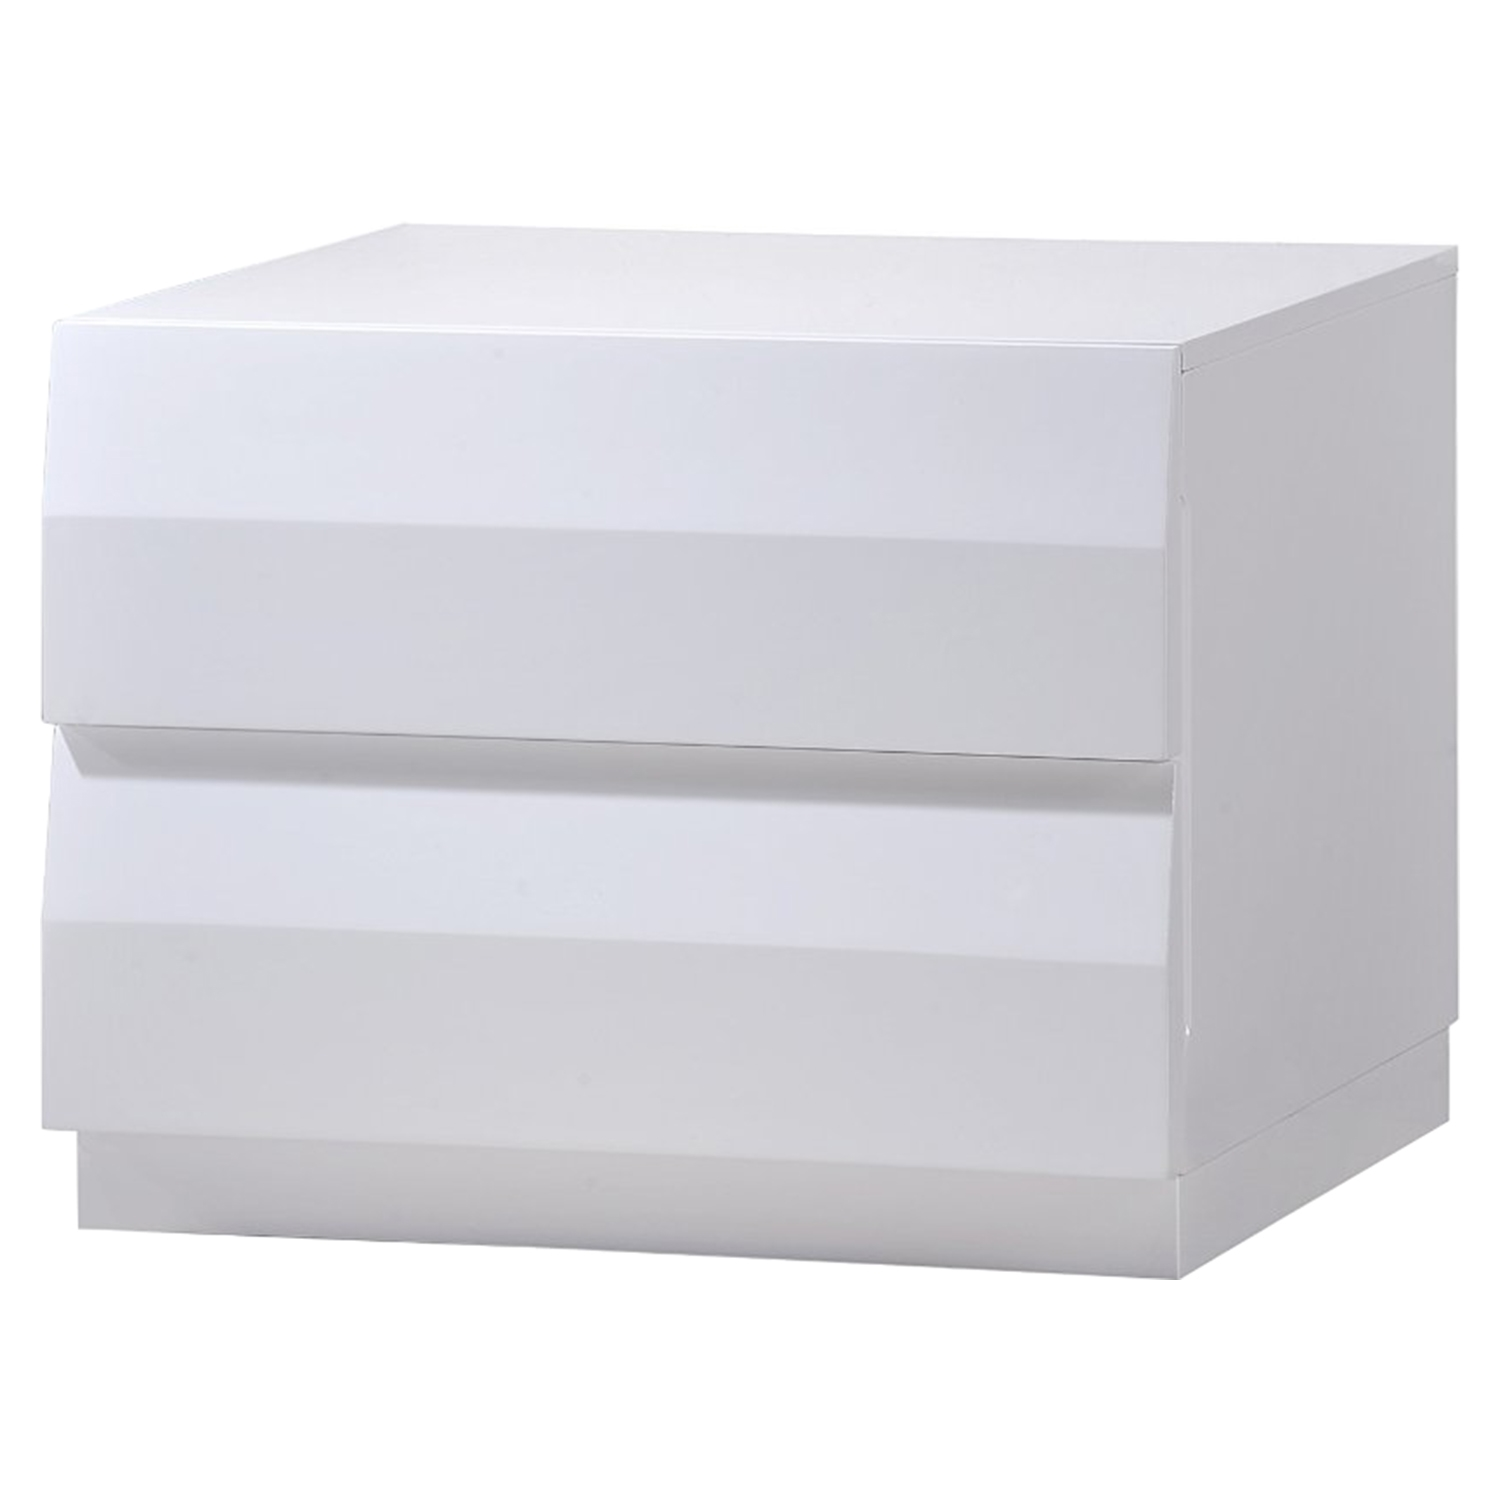 Bailey Bedroom Set in High Gloss White - GLO-BAILEY-900A-M-SET